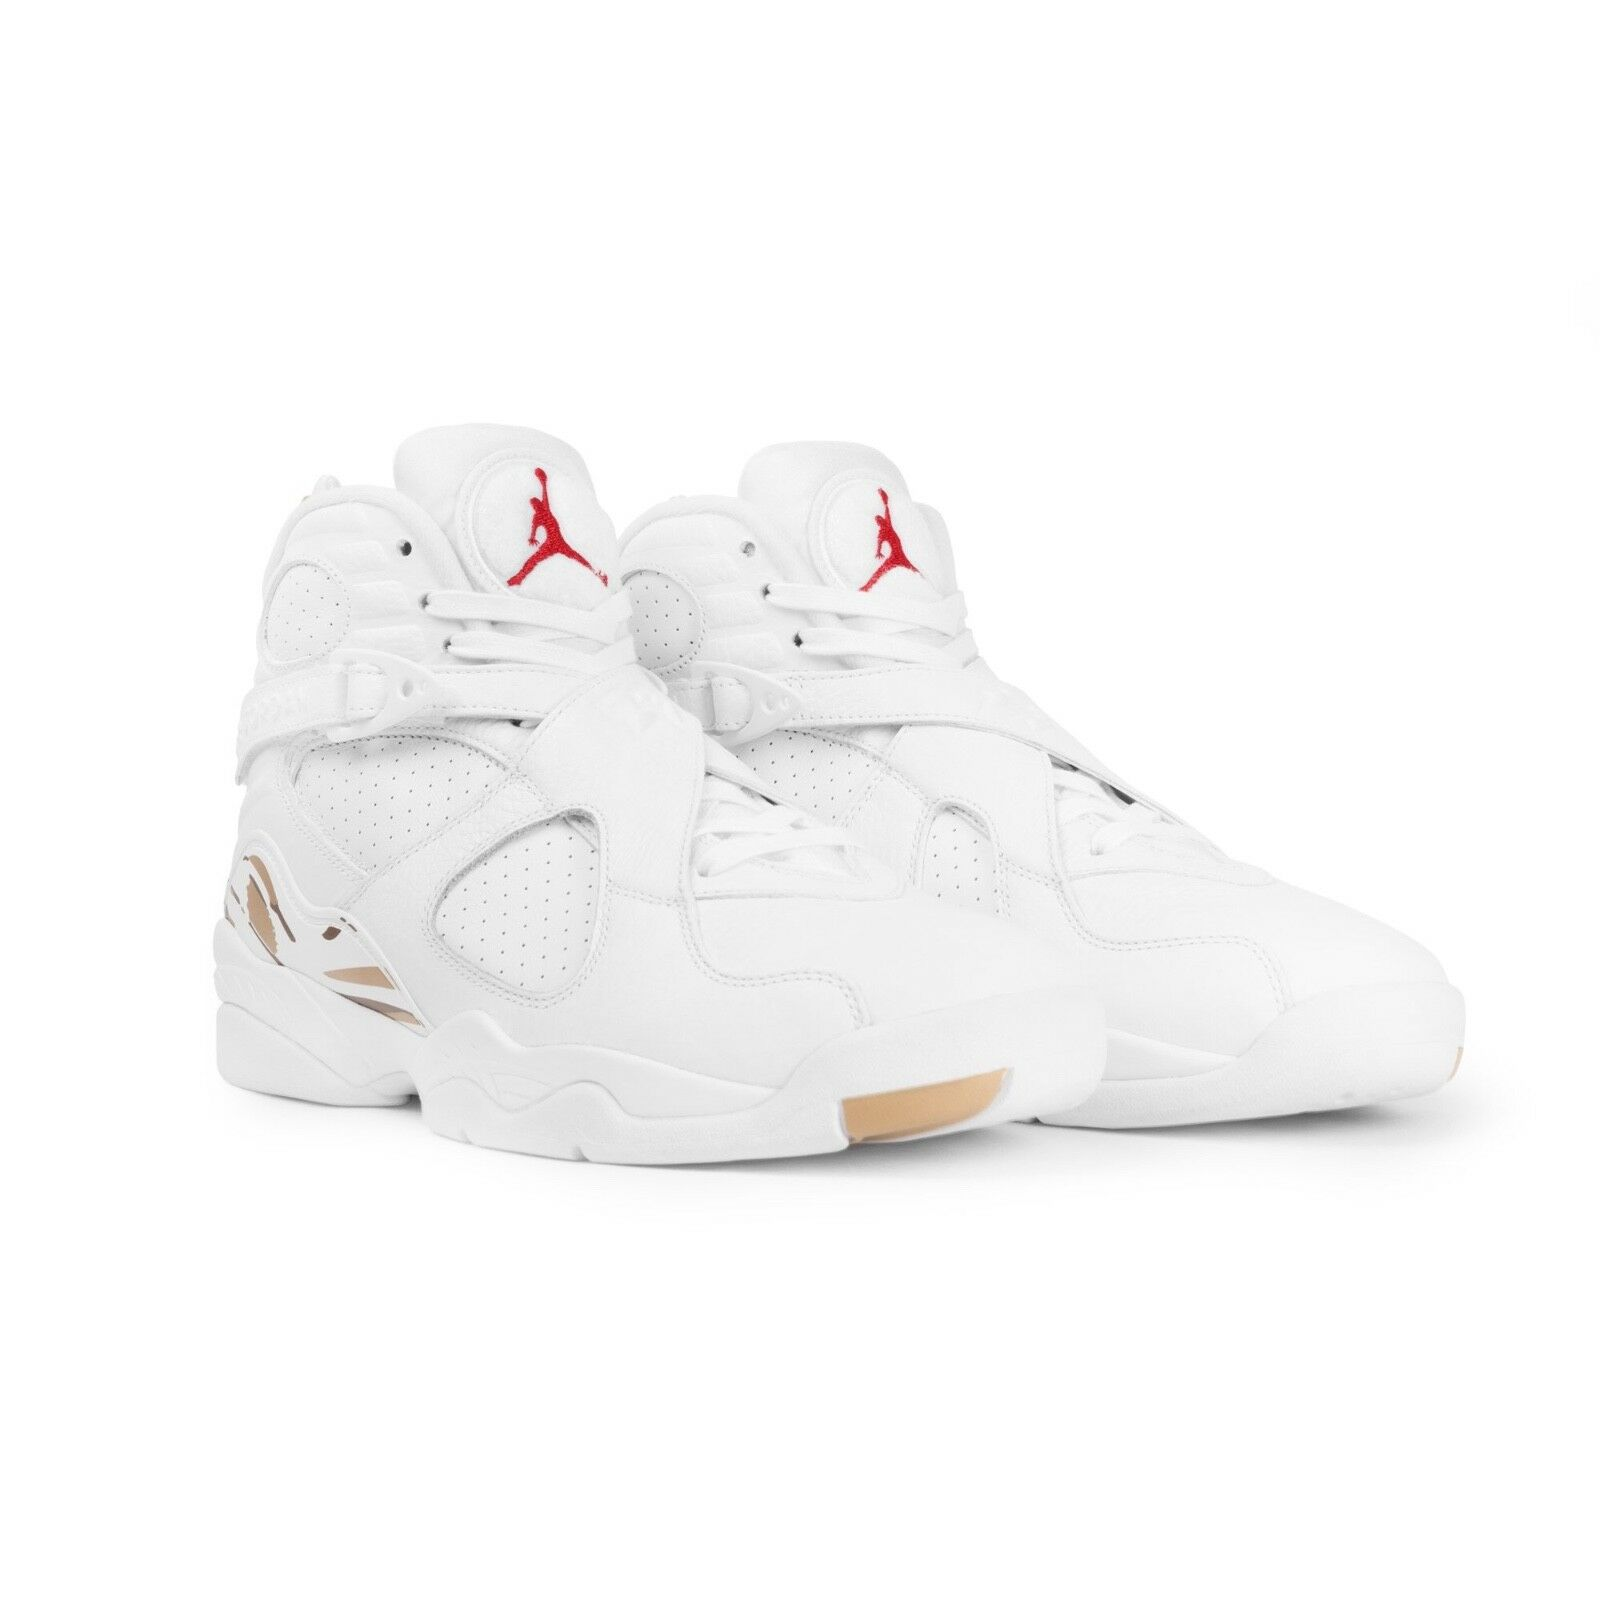 BRAND NEW October's Very Own OVO Air Jordan Retro 8's White gold Size 11.5 Drake